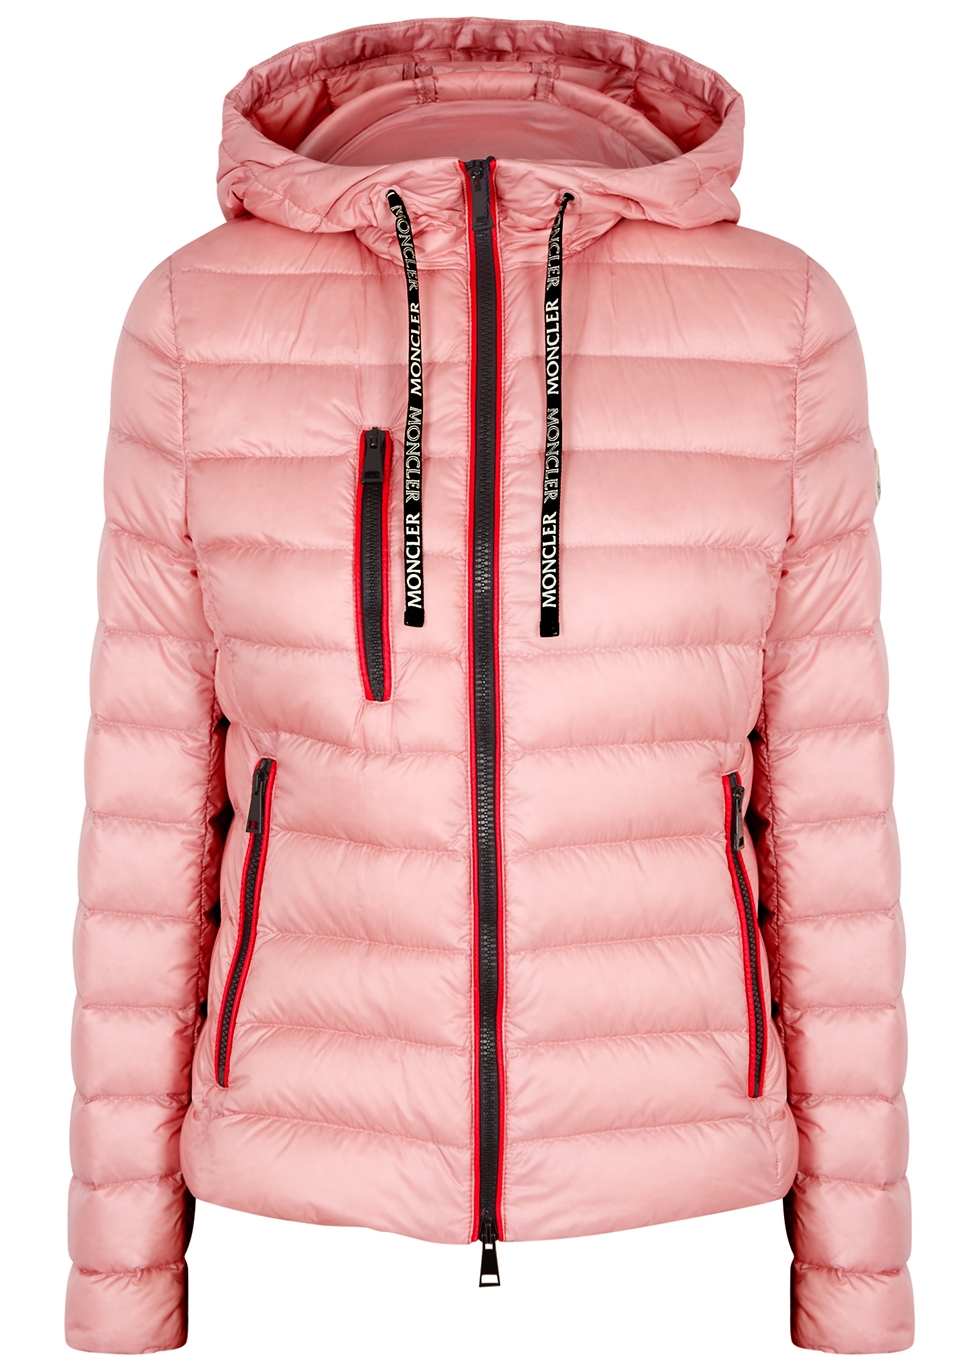 1b1954e60 Moncler - Womens - Harvey Nichols